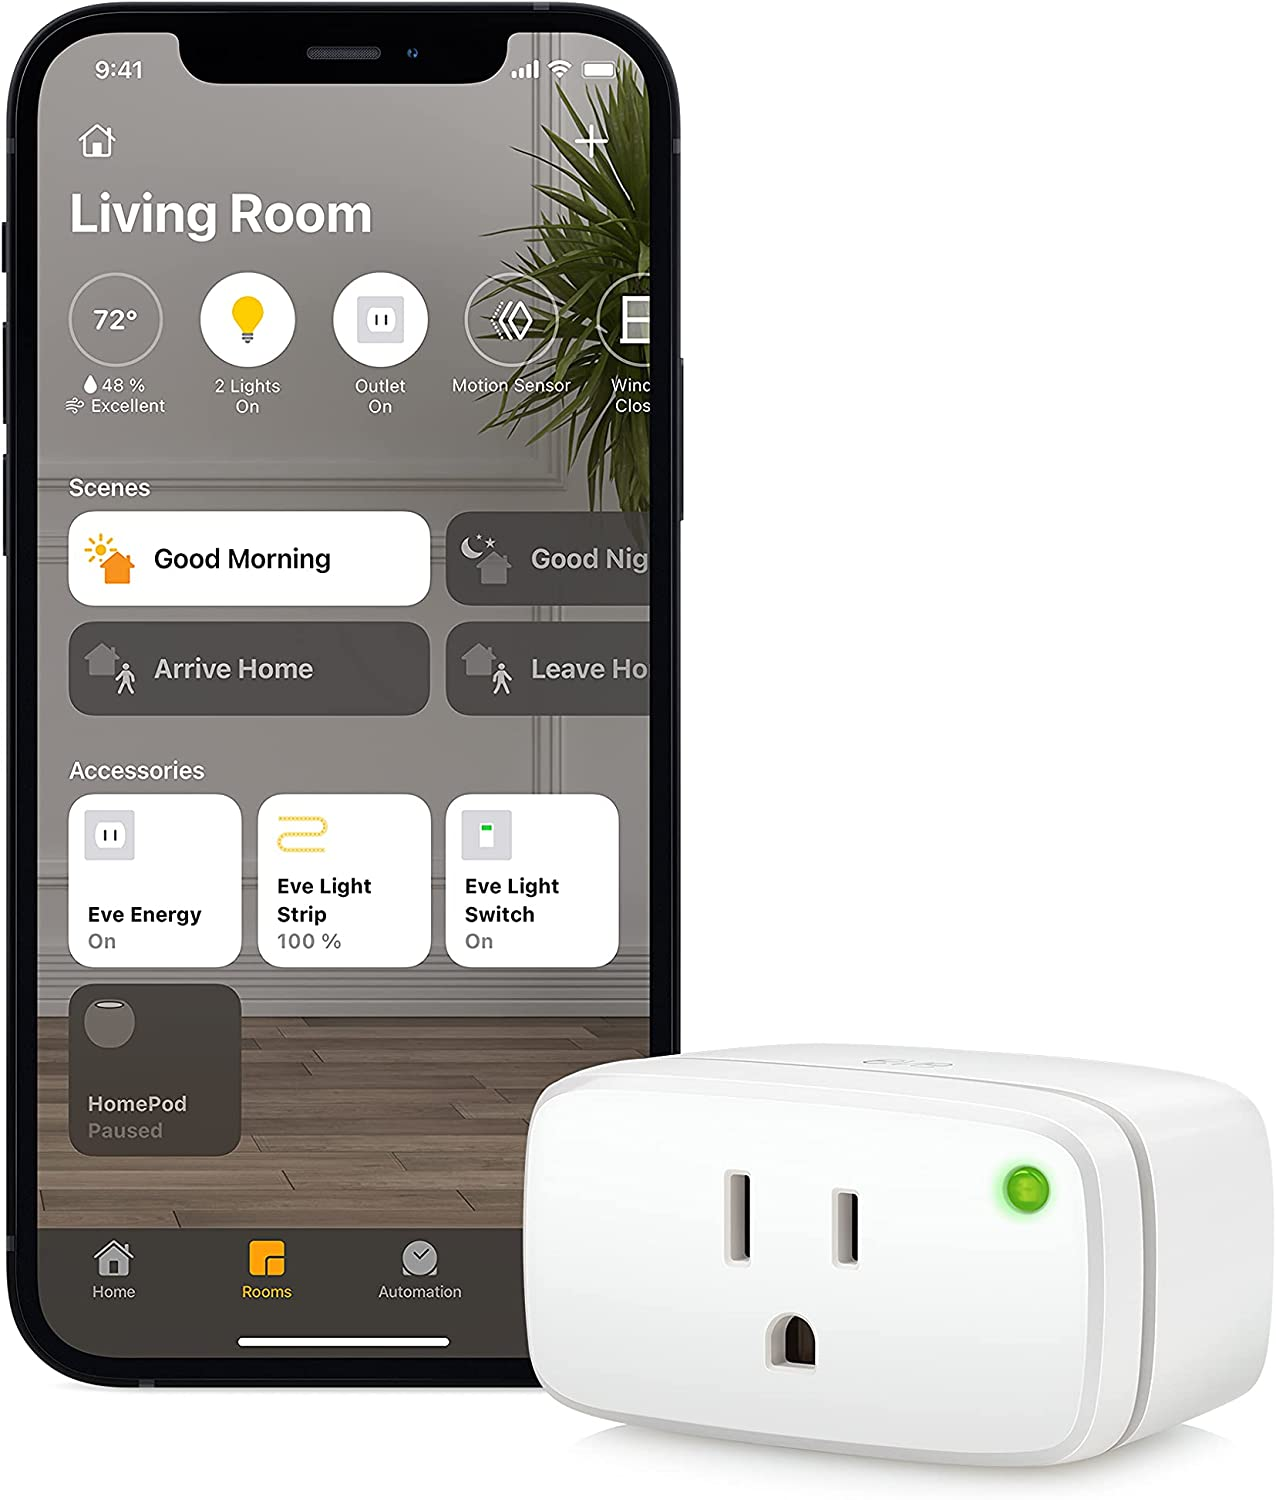 Eve Energy - Apple HomeKit Smart Home, Smart Plug & Power Meter with Built-In Schedules & Switches, App Compatibility, Bluetooth and Thread